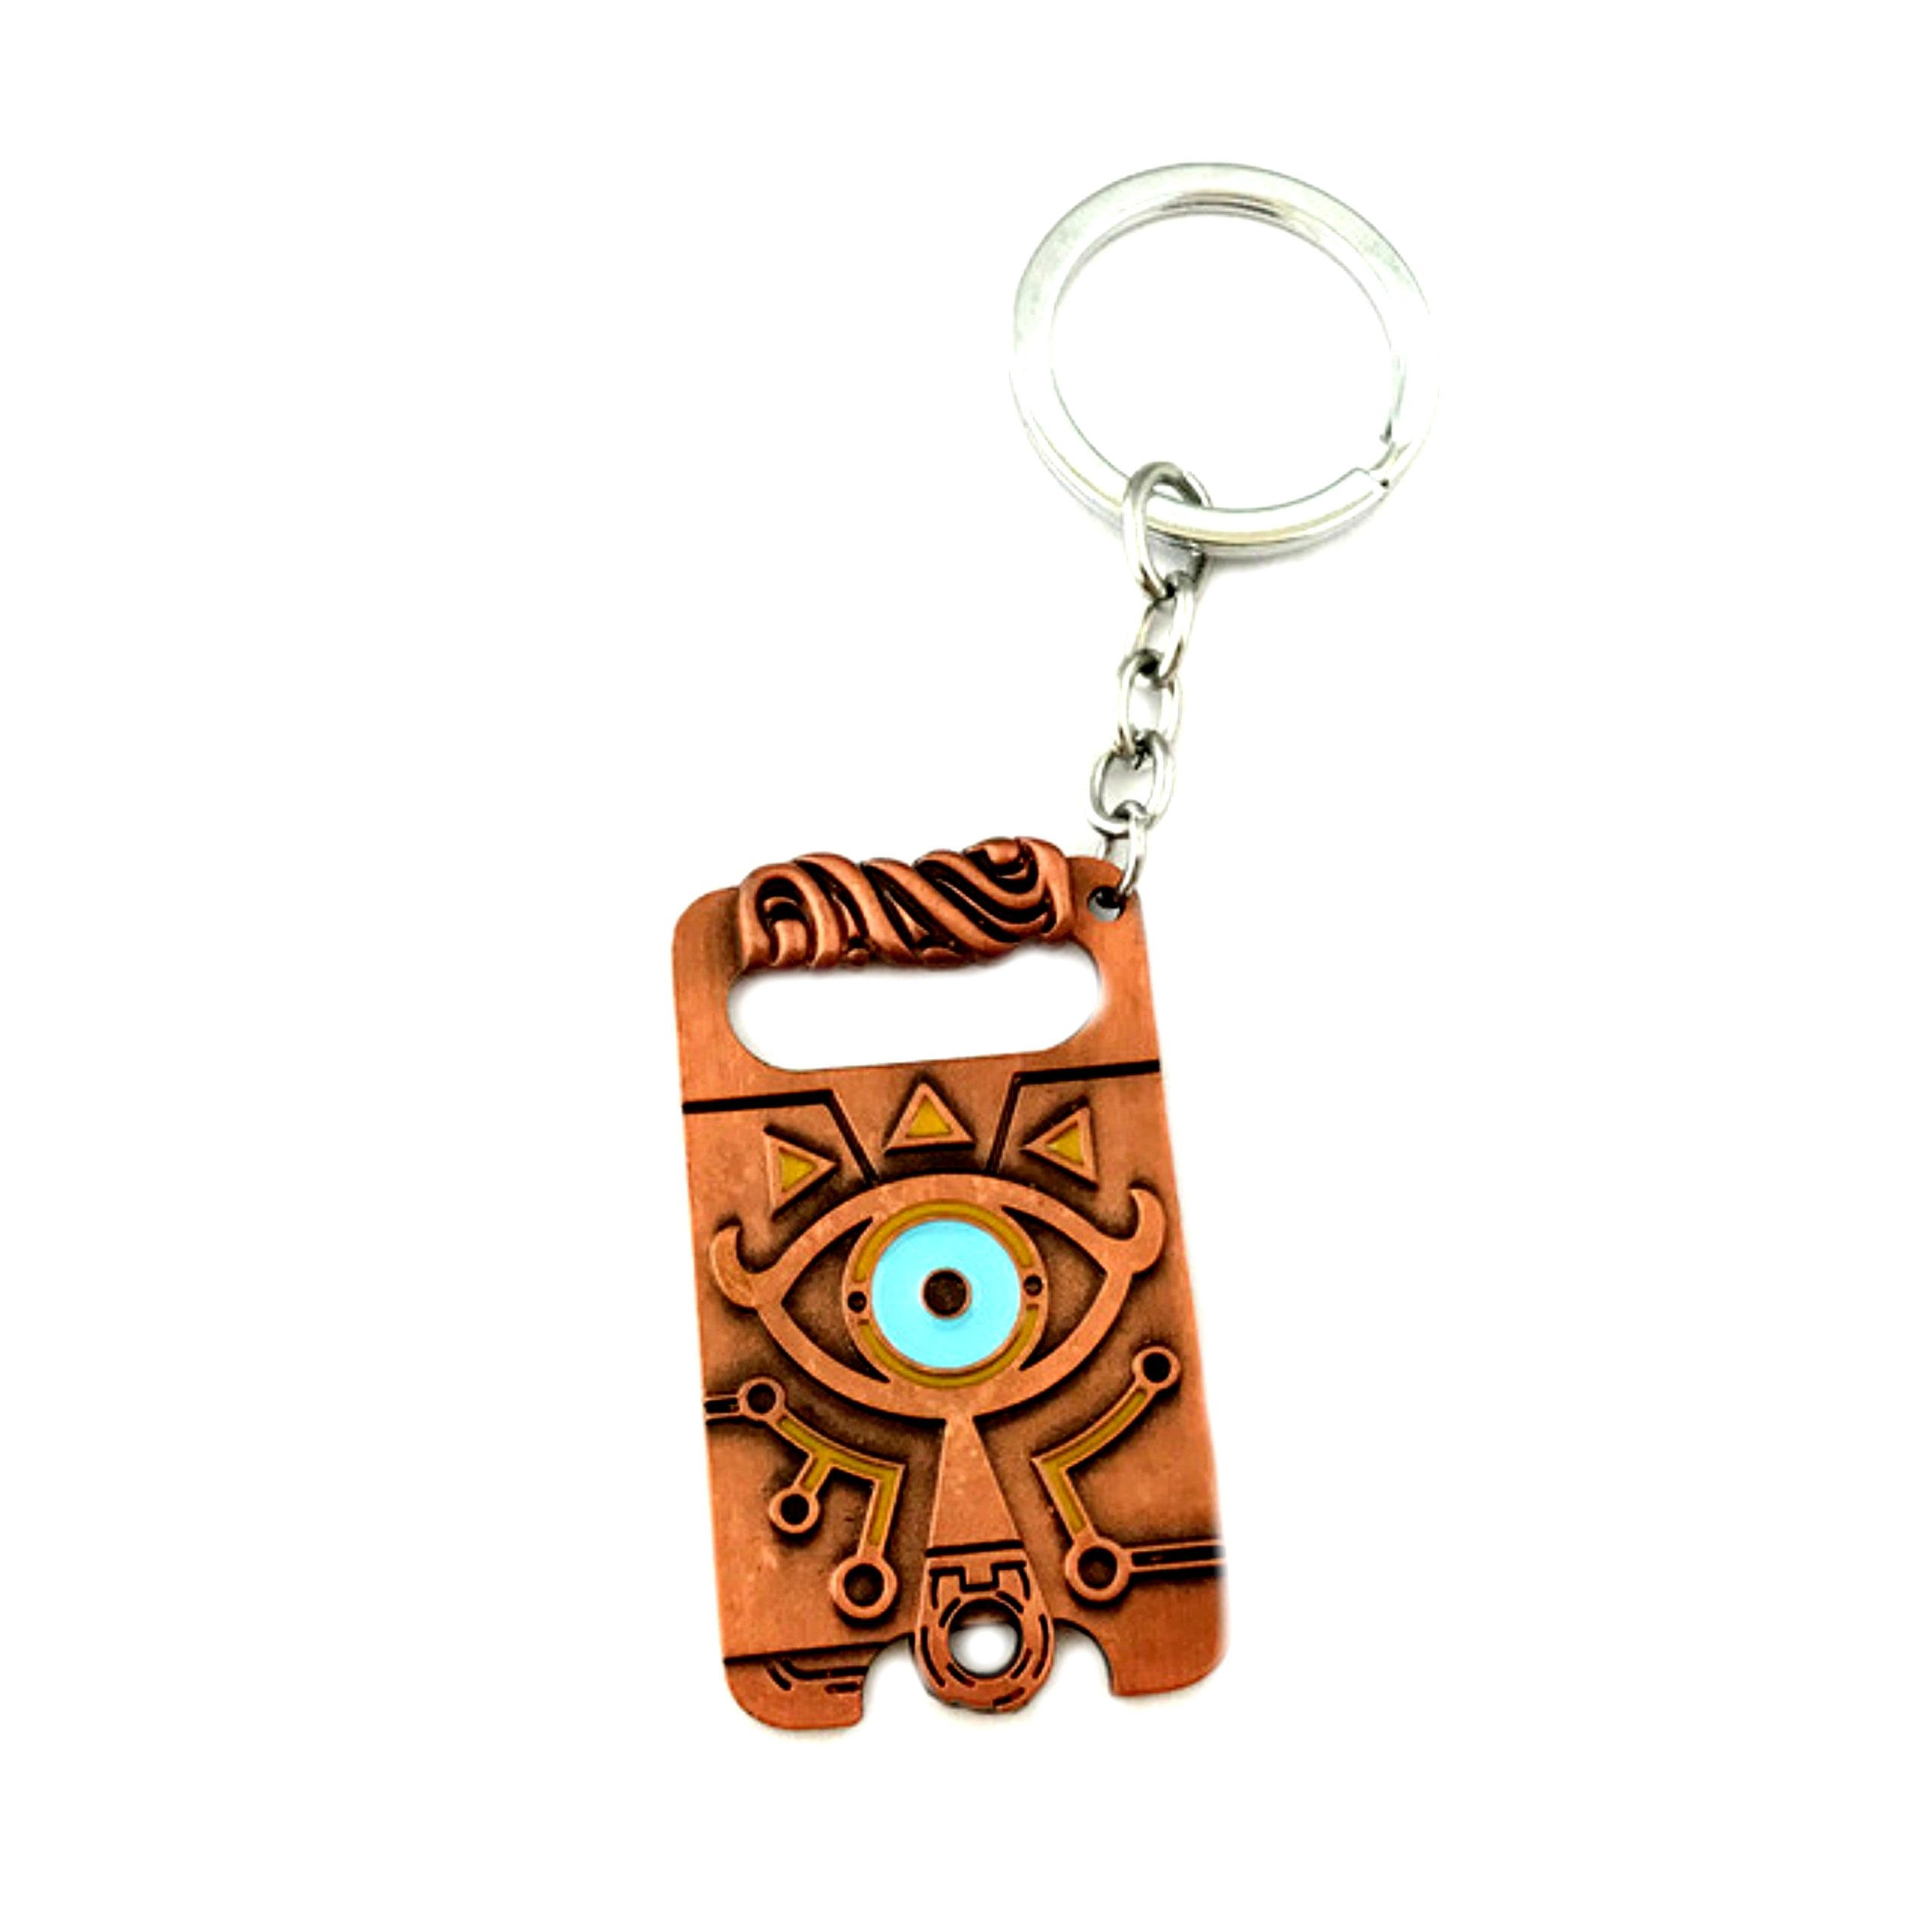 The Legend of Zelda Keychain Key Ring Video Games PC Console Gaming Movies Comics Auto/Boat House Keys